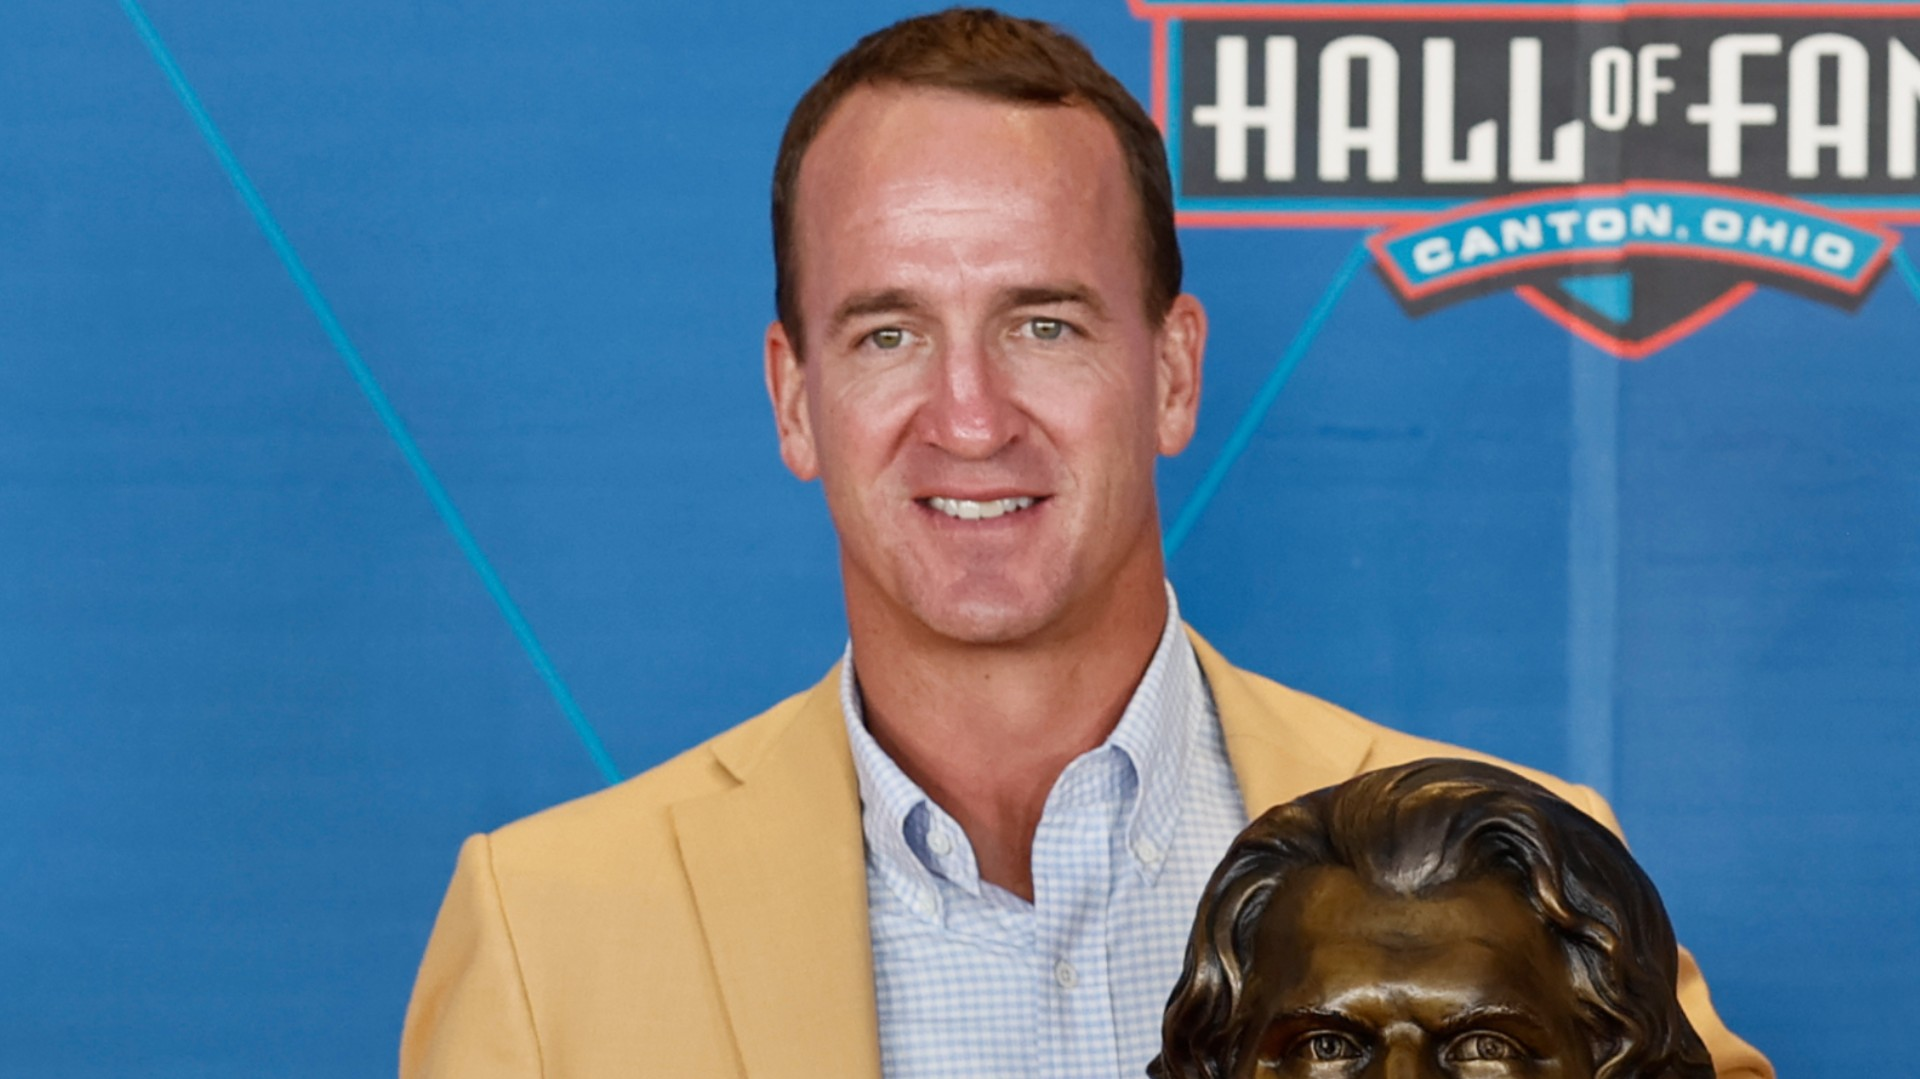 Peyton Manning modifies Ray Lewis, Tom Brady addresses the future of the NFL in an emotional Hall of Fame speech